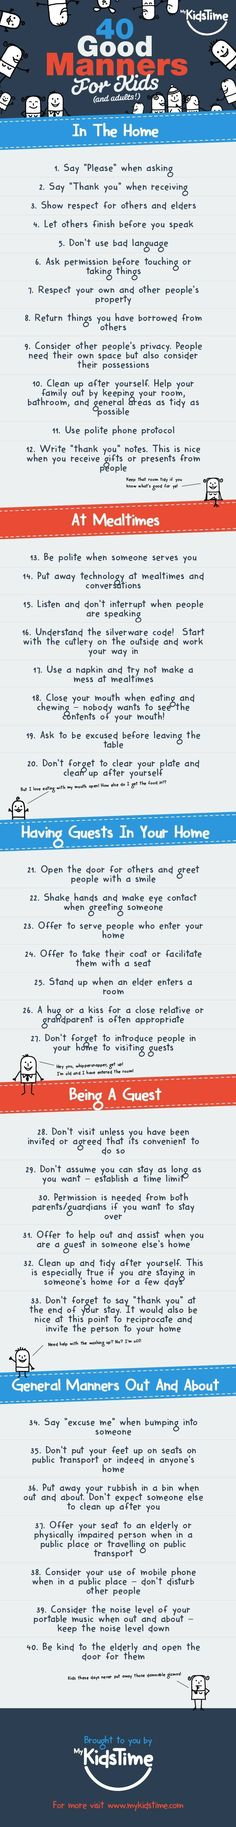 Get your child noticed for all the right reasons and stand out as a model parent! Here are 40 good manners for kids, that every child (and adult!) should know